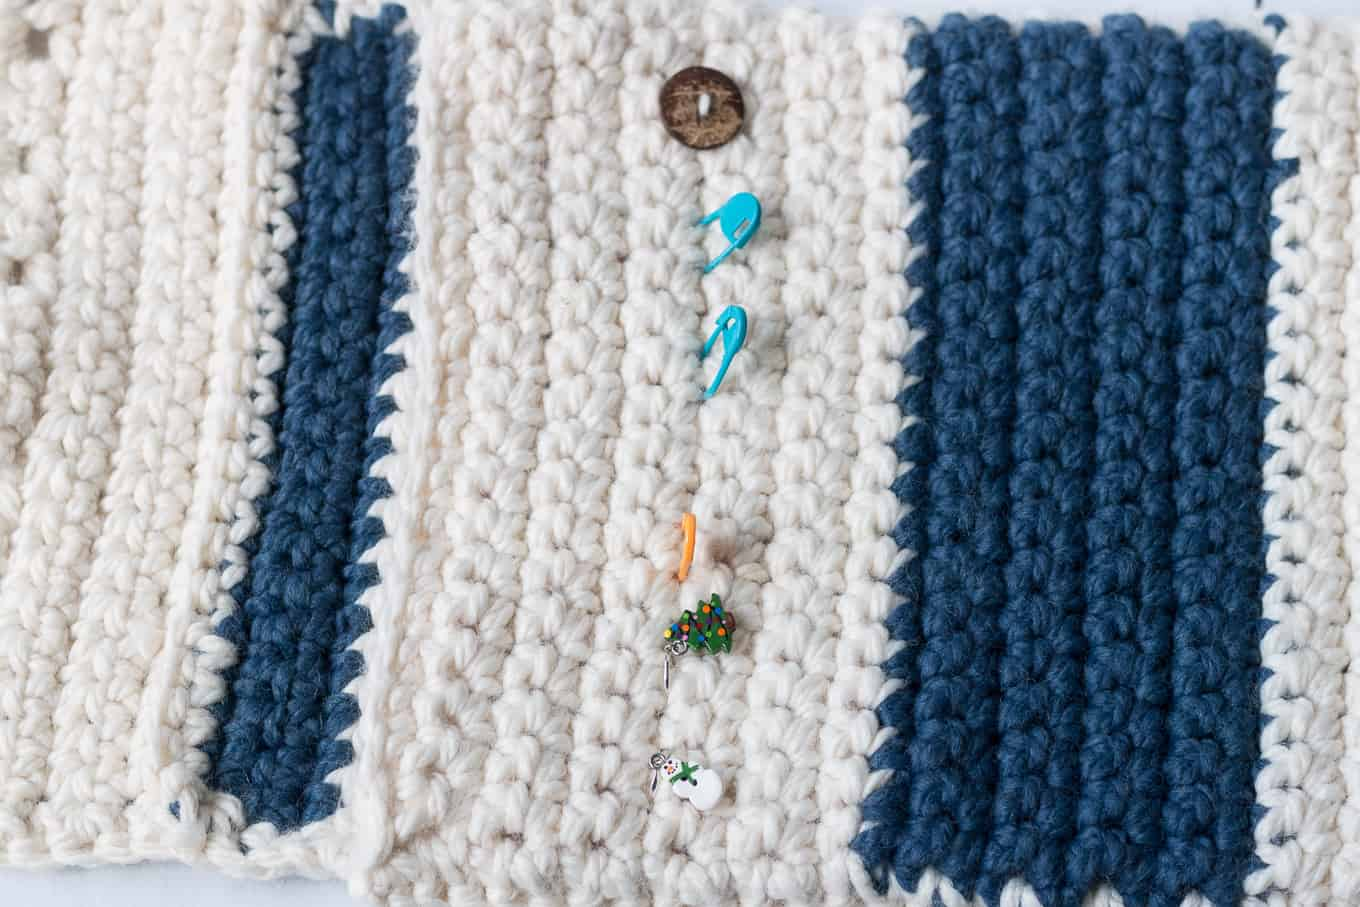 How to Add Buttons to a Crochet Pillow